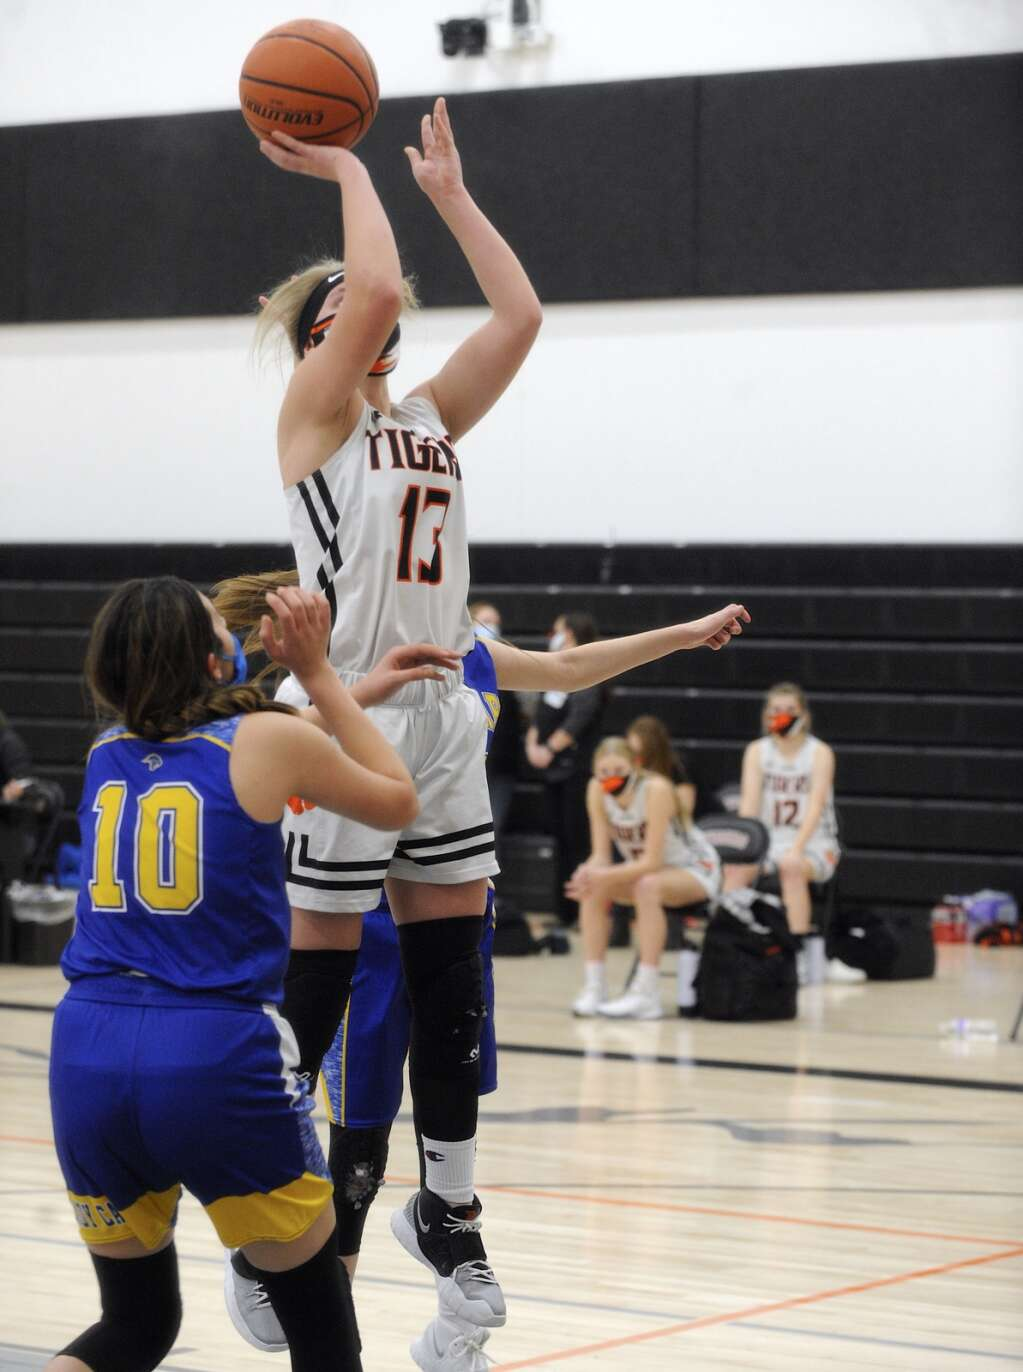 Hayden junior Alison Rajzer puts away a rebound during a game against North Park on Friday evening. (Photo by Shelby Reardon)